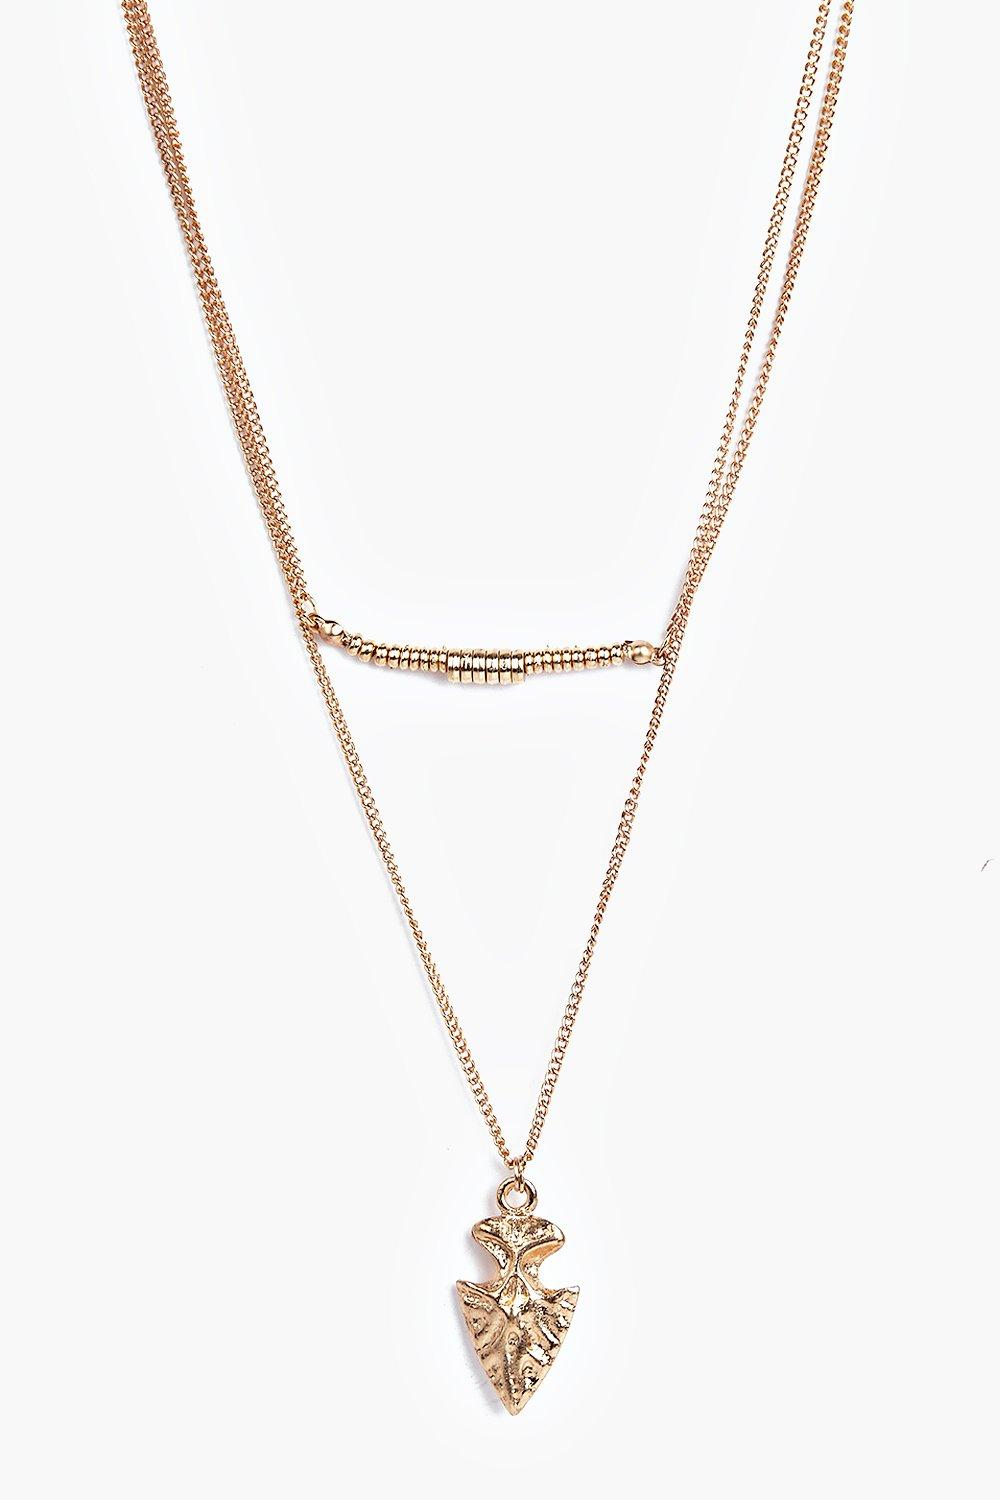 Darcy Arrow And Bar Layered Necklace